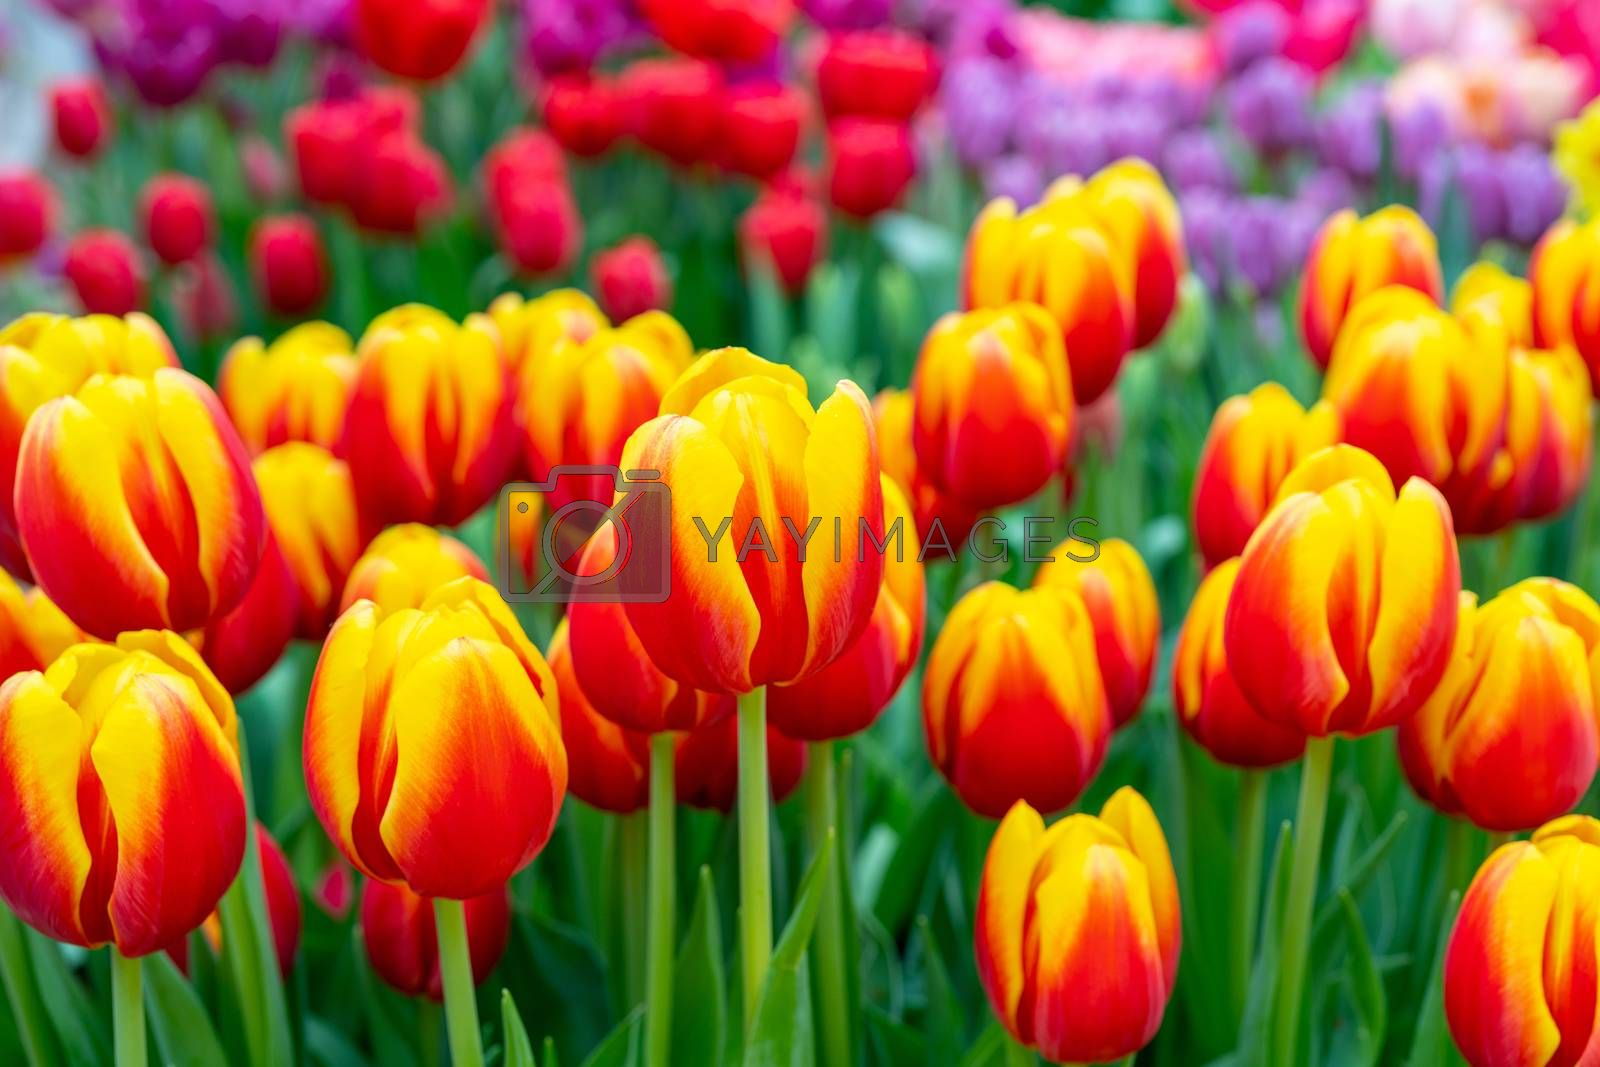 Beautiful flowers red tulips. Natural background Spring flowering tulips.